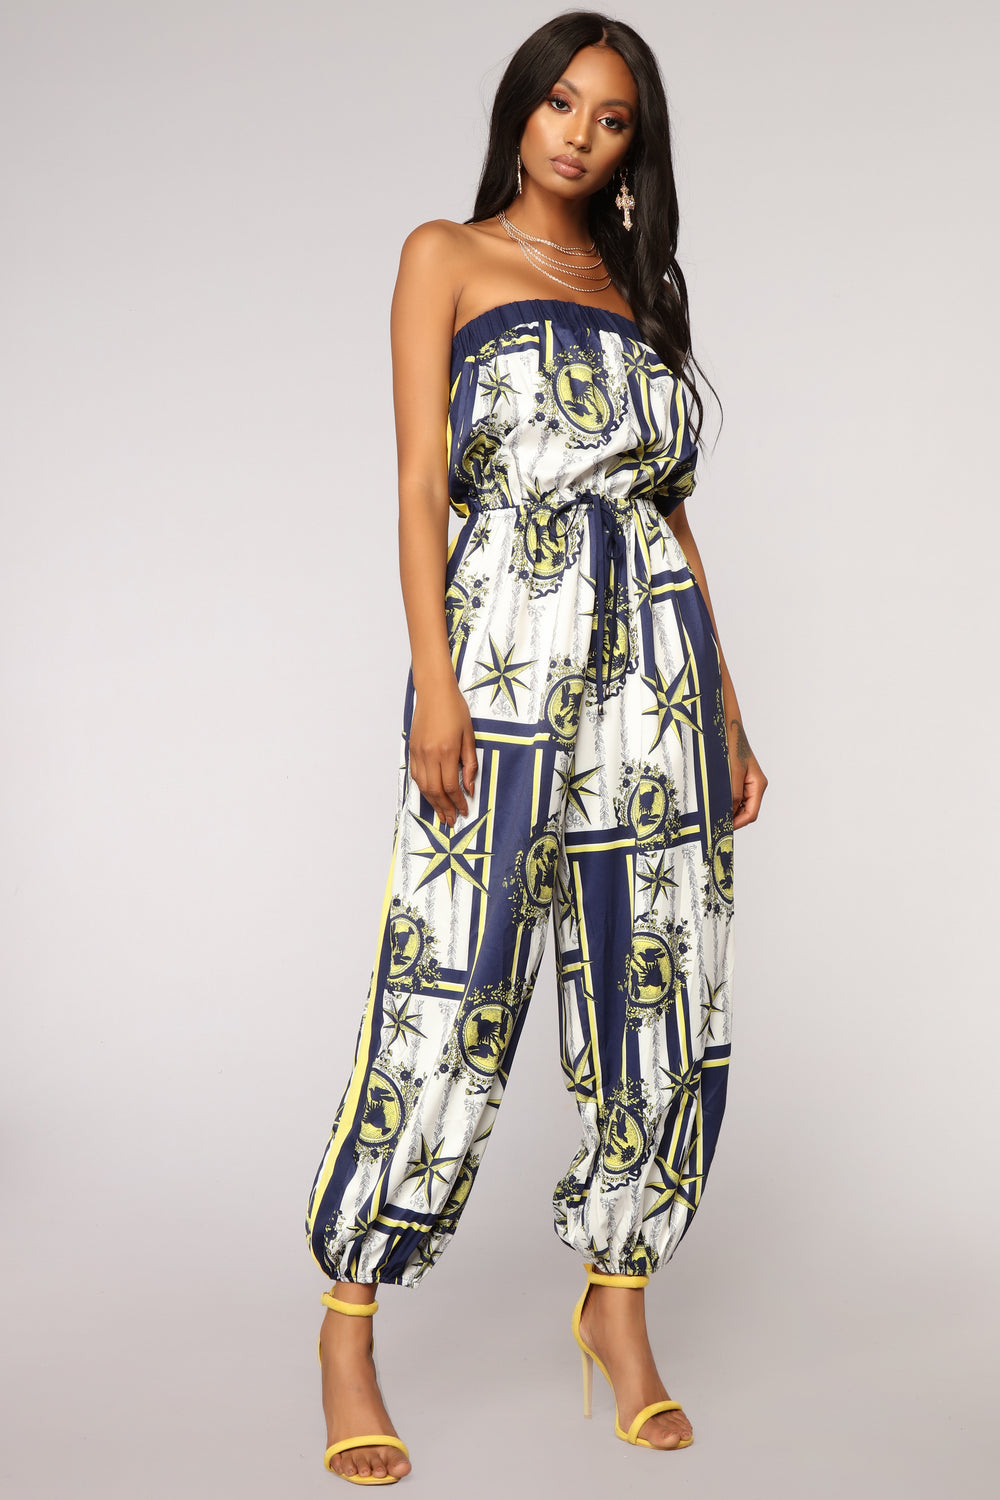 Find Your Path Tube Jumpsuit - Navy